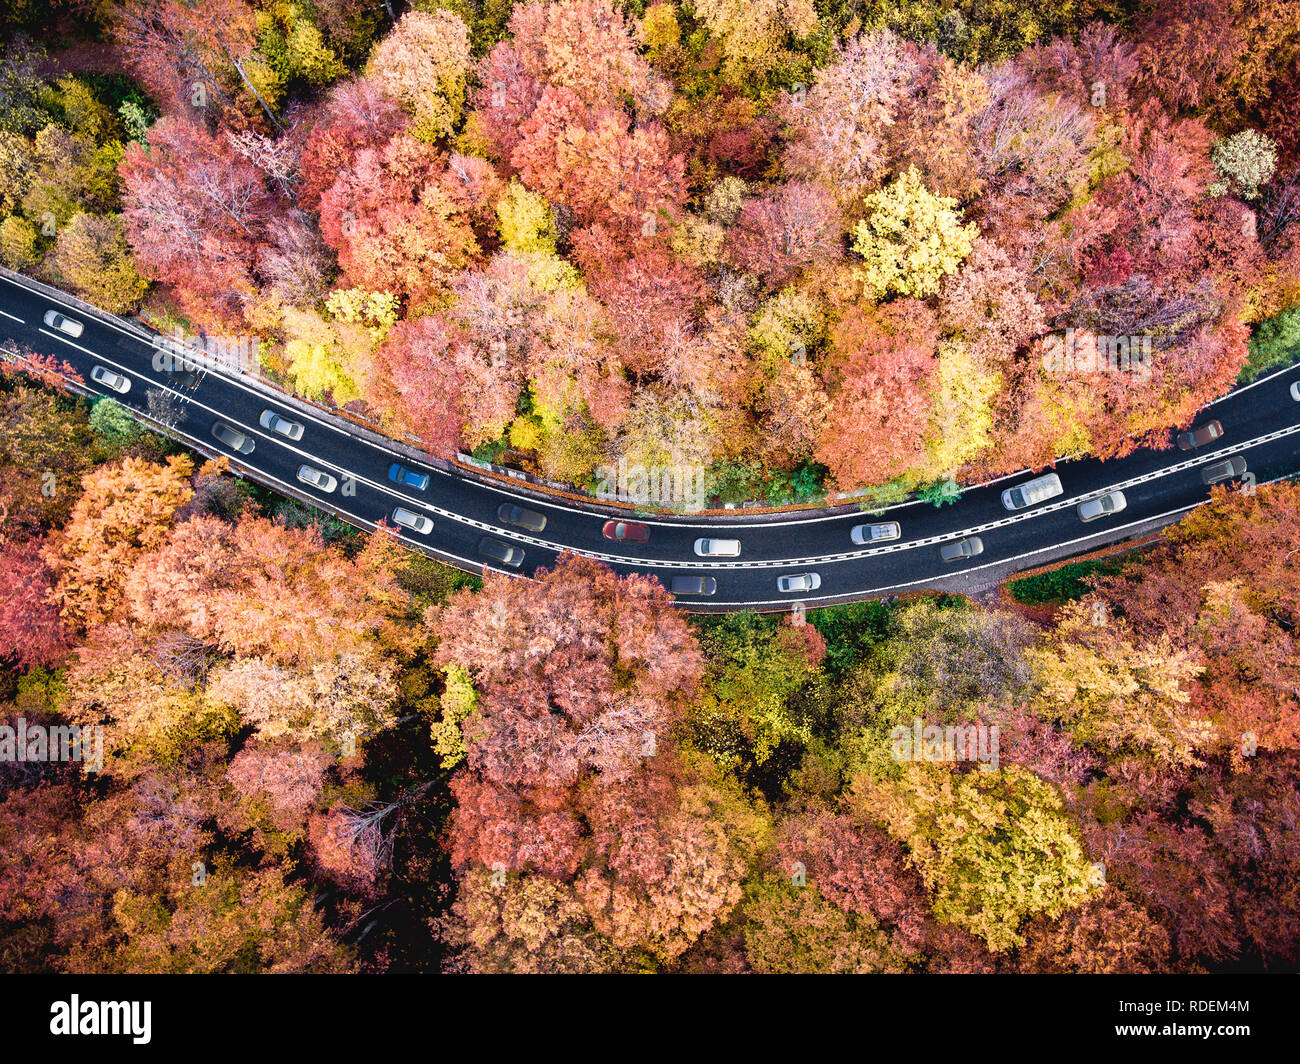 Heavy traffic on a highway trough the forest with cars stuck in a traffic jam road in the mountains Stock Photo